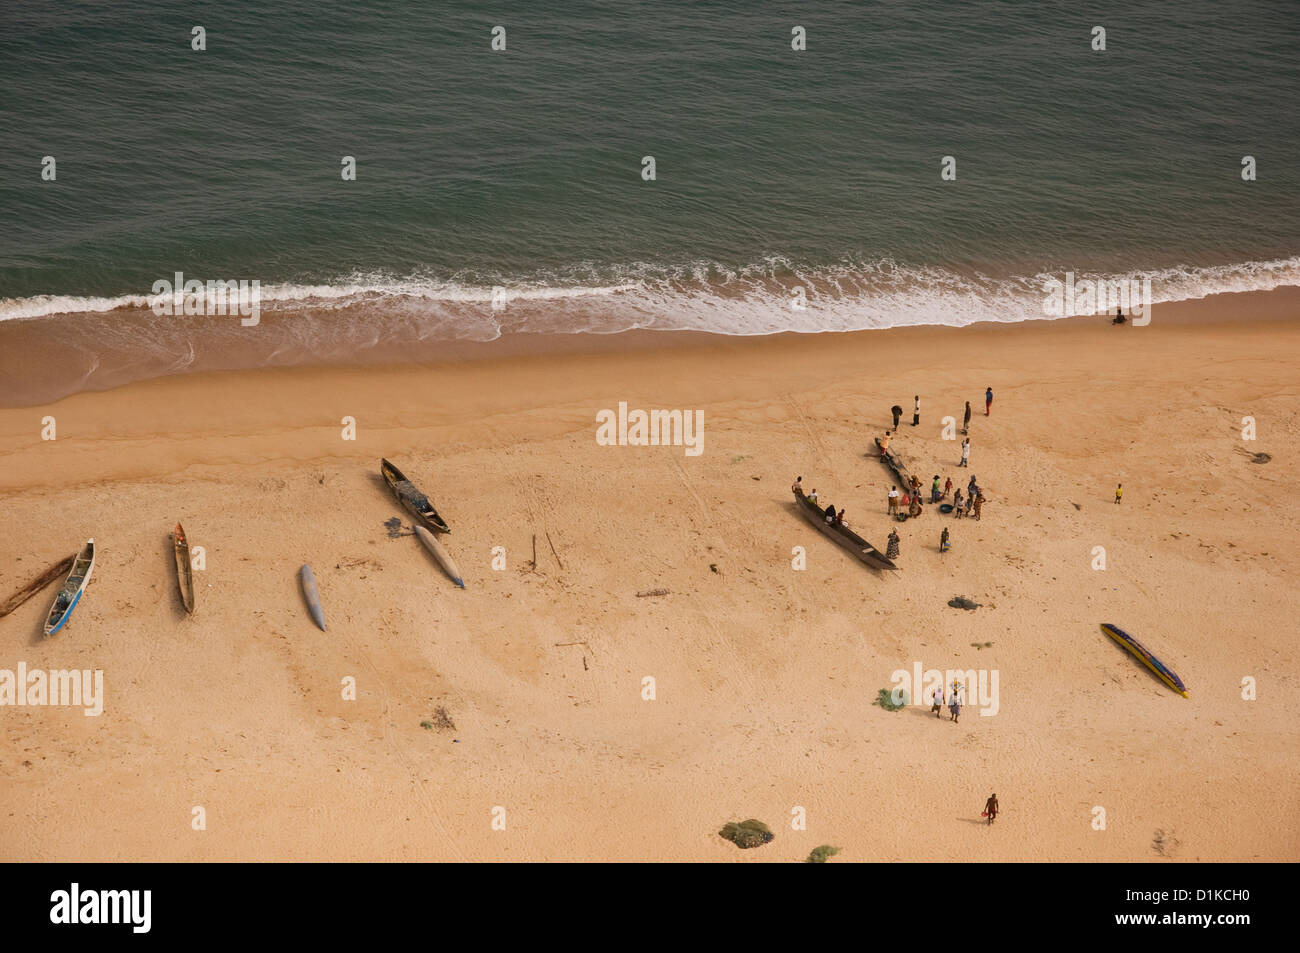 Image of fishermen, women, pirogues and nets sprawled across the beach in anticipation for the days catch, Liberia. - Stock Image